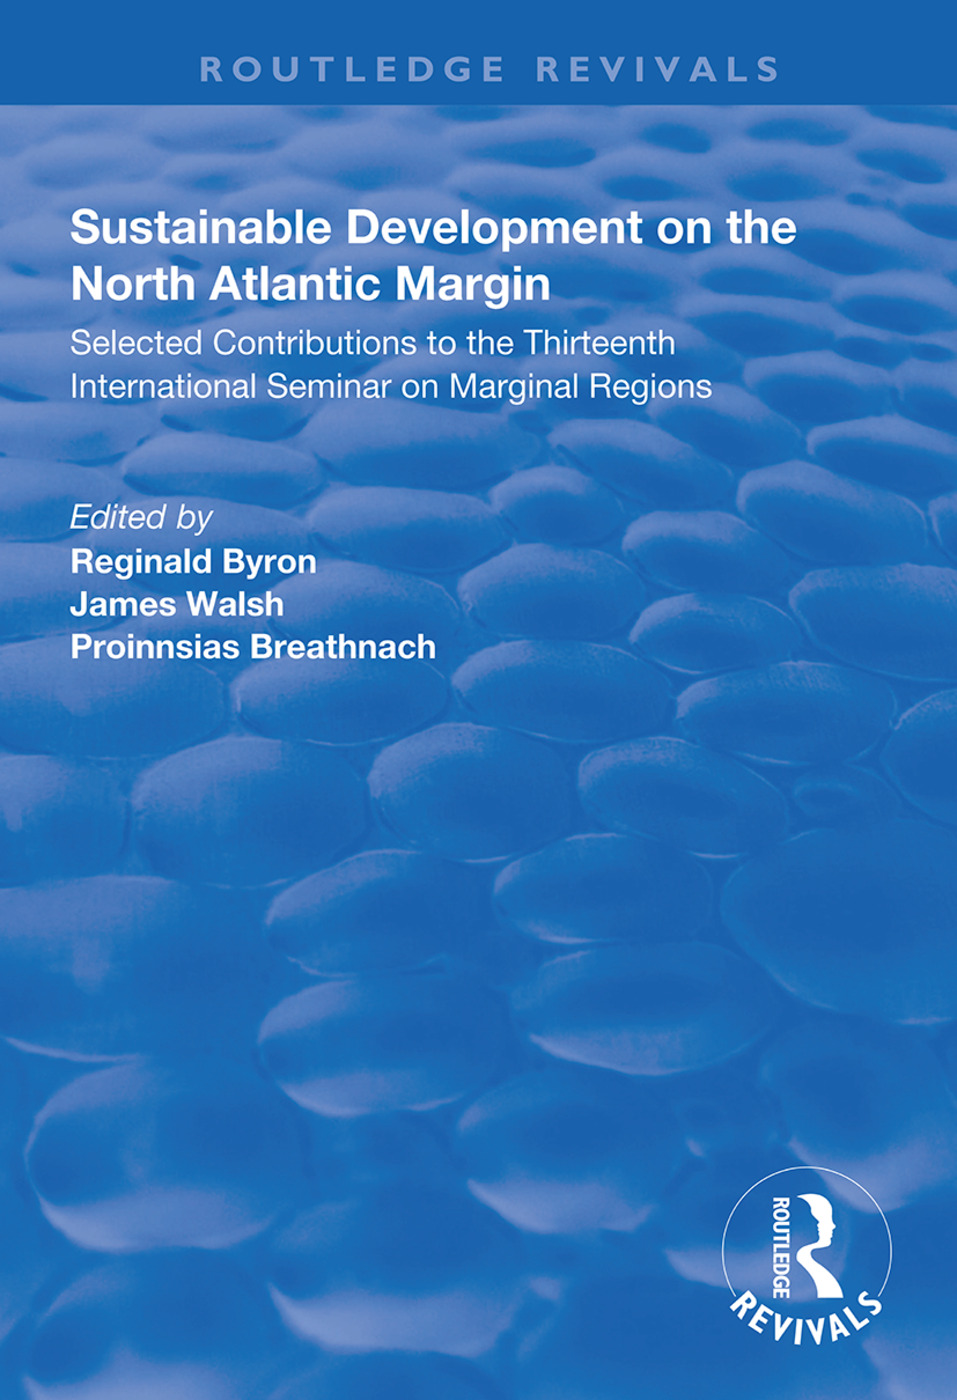 Sustainable Development of the North Atlantic Margin: Selected Contributions to the Thirteenth International Seminar on Marginal Regions book cover